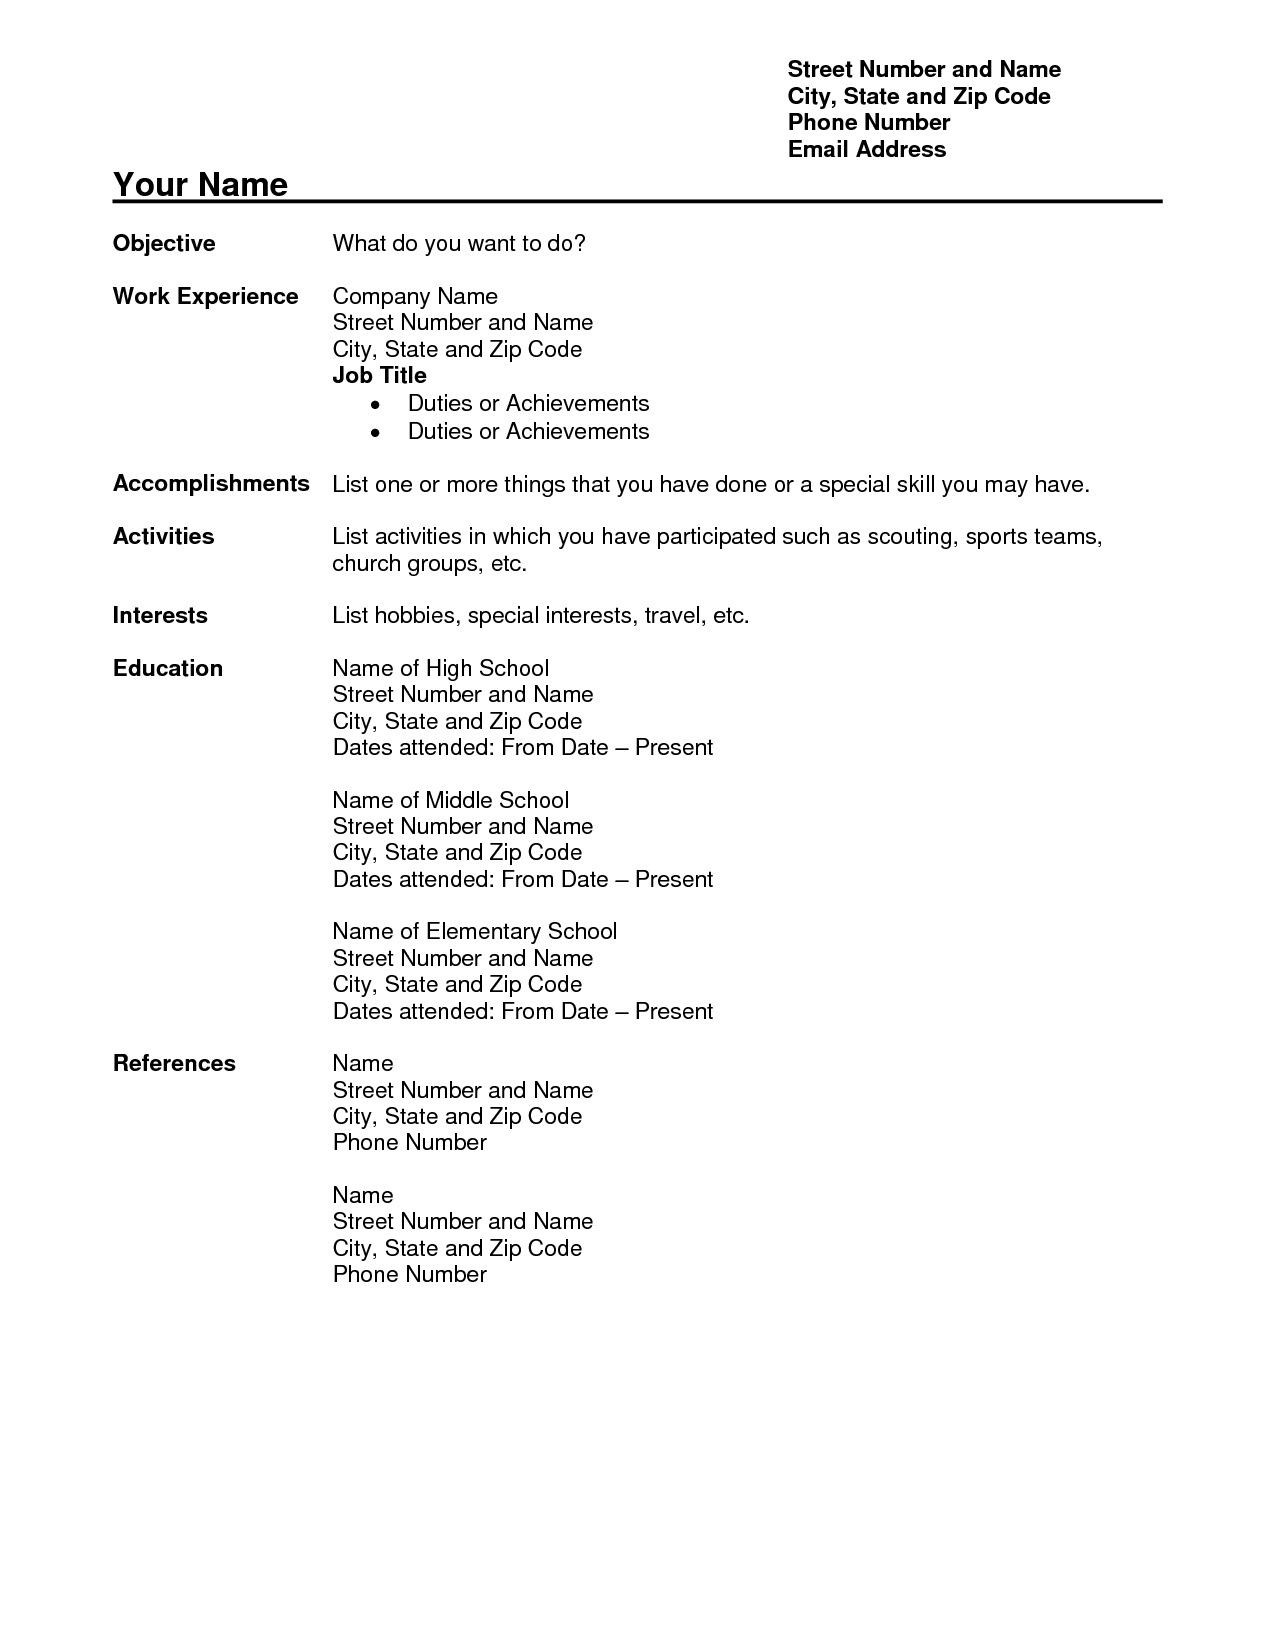 free teacher resume templates download free teacher resume templates download free teacher resume templates microsoft - Download Resume Template Microsoft Word